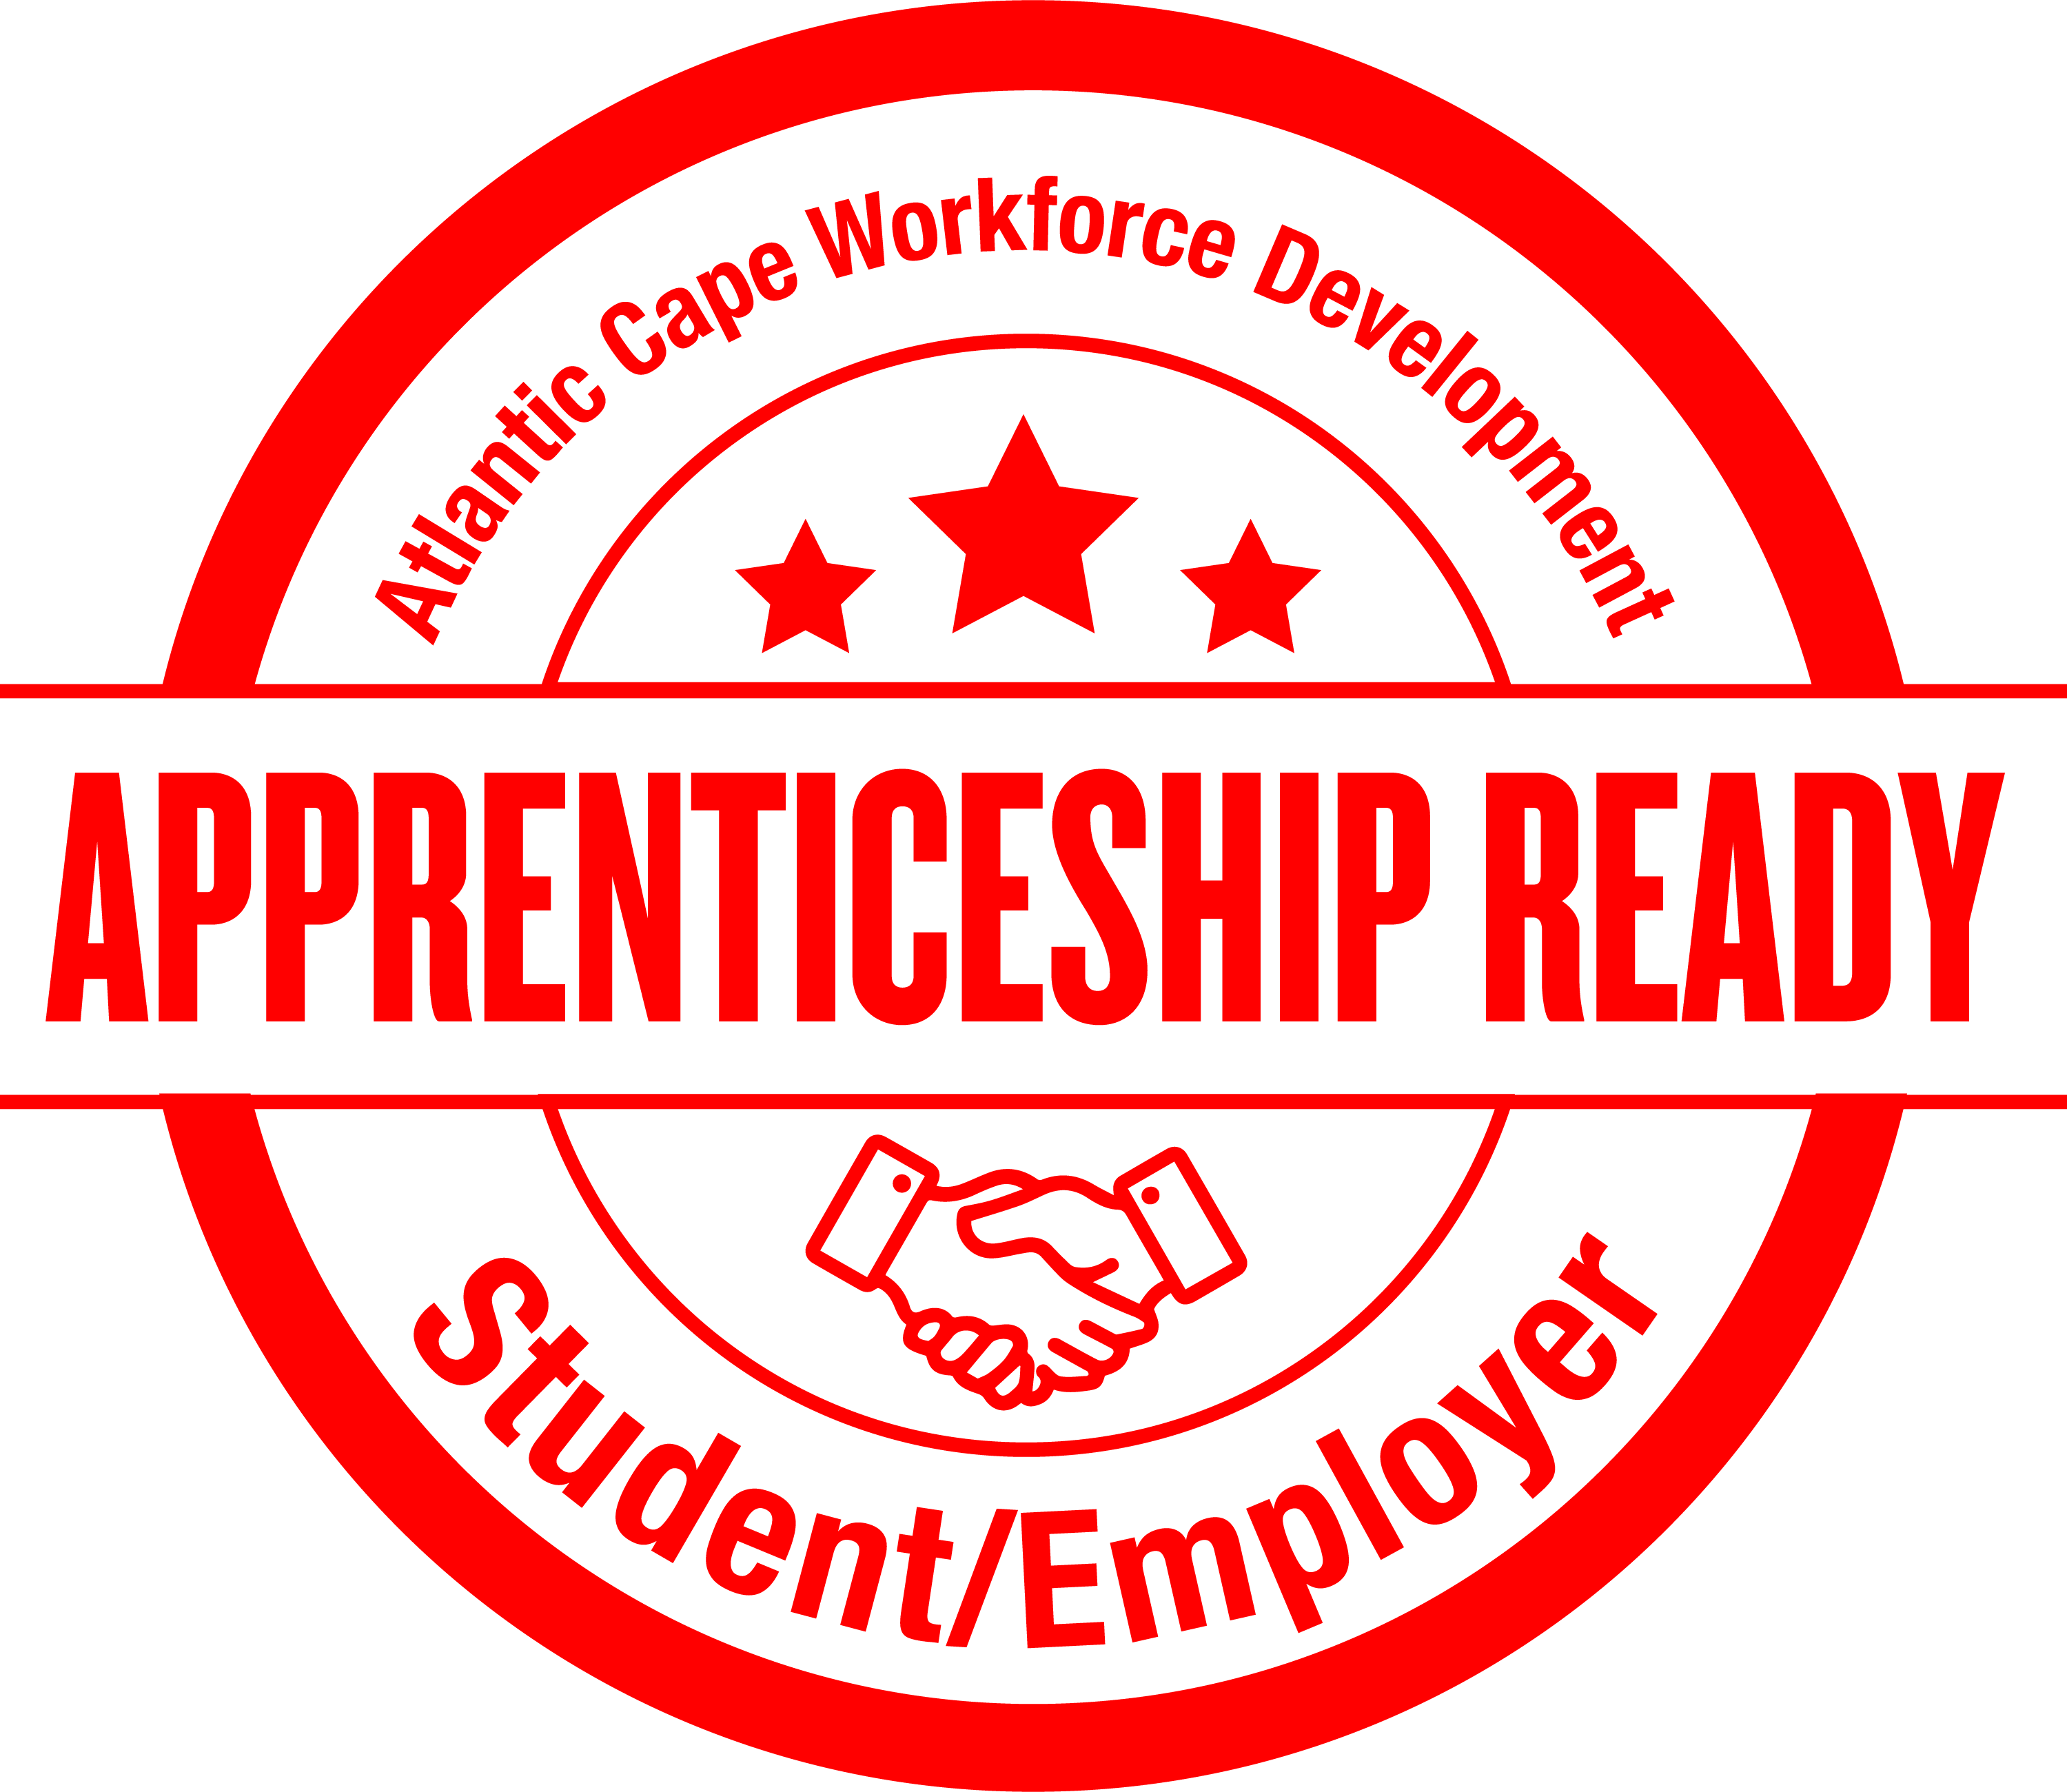 Apprenticeship ready at Atlantic Cape